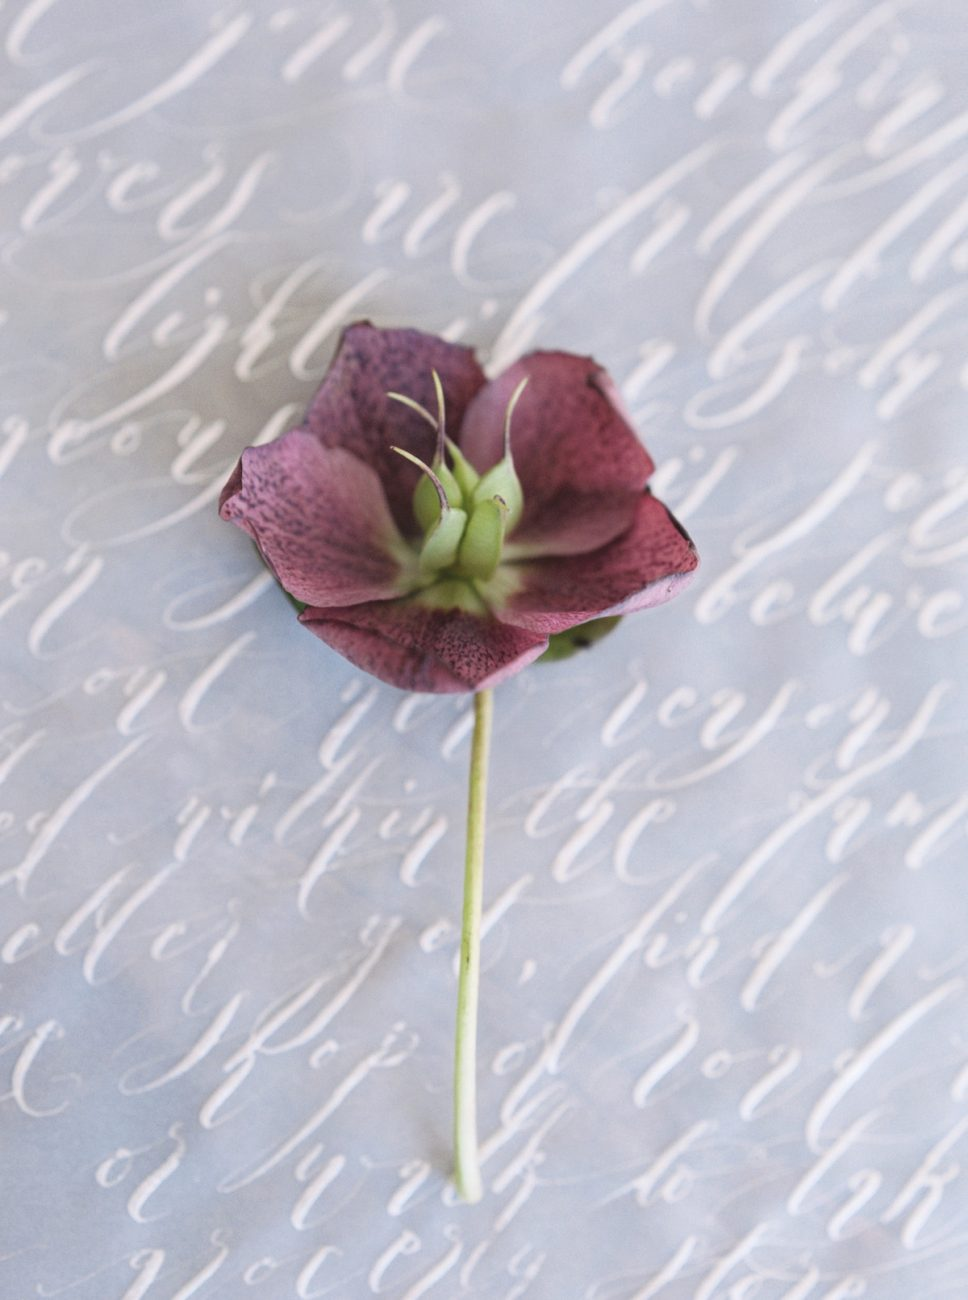 Moody Black Wedding Inspiration_red flower on vellum with silver calligraphy